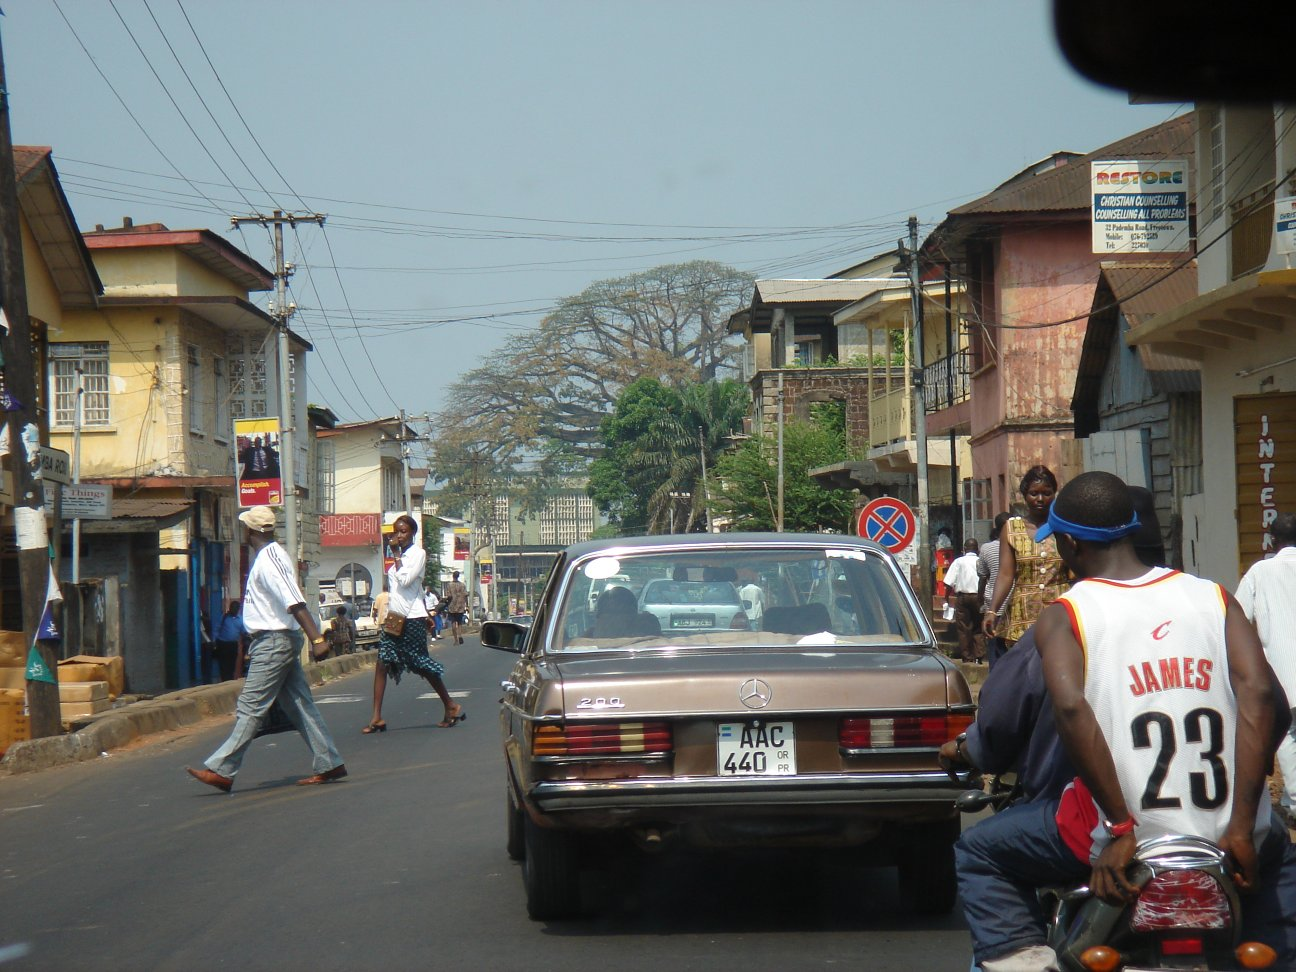 https://i2.wp.com/upload.wikimedia.org/wikipedia/commons/9/96/Freetownstreet.jpg